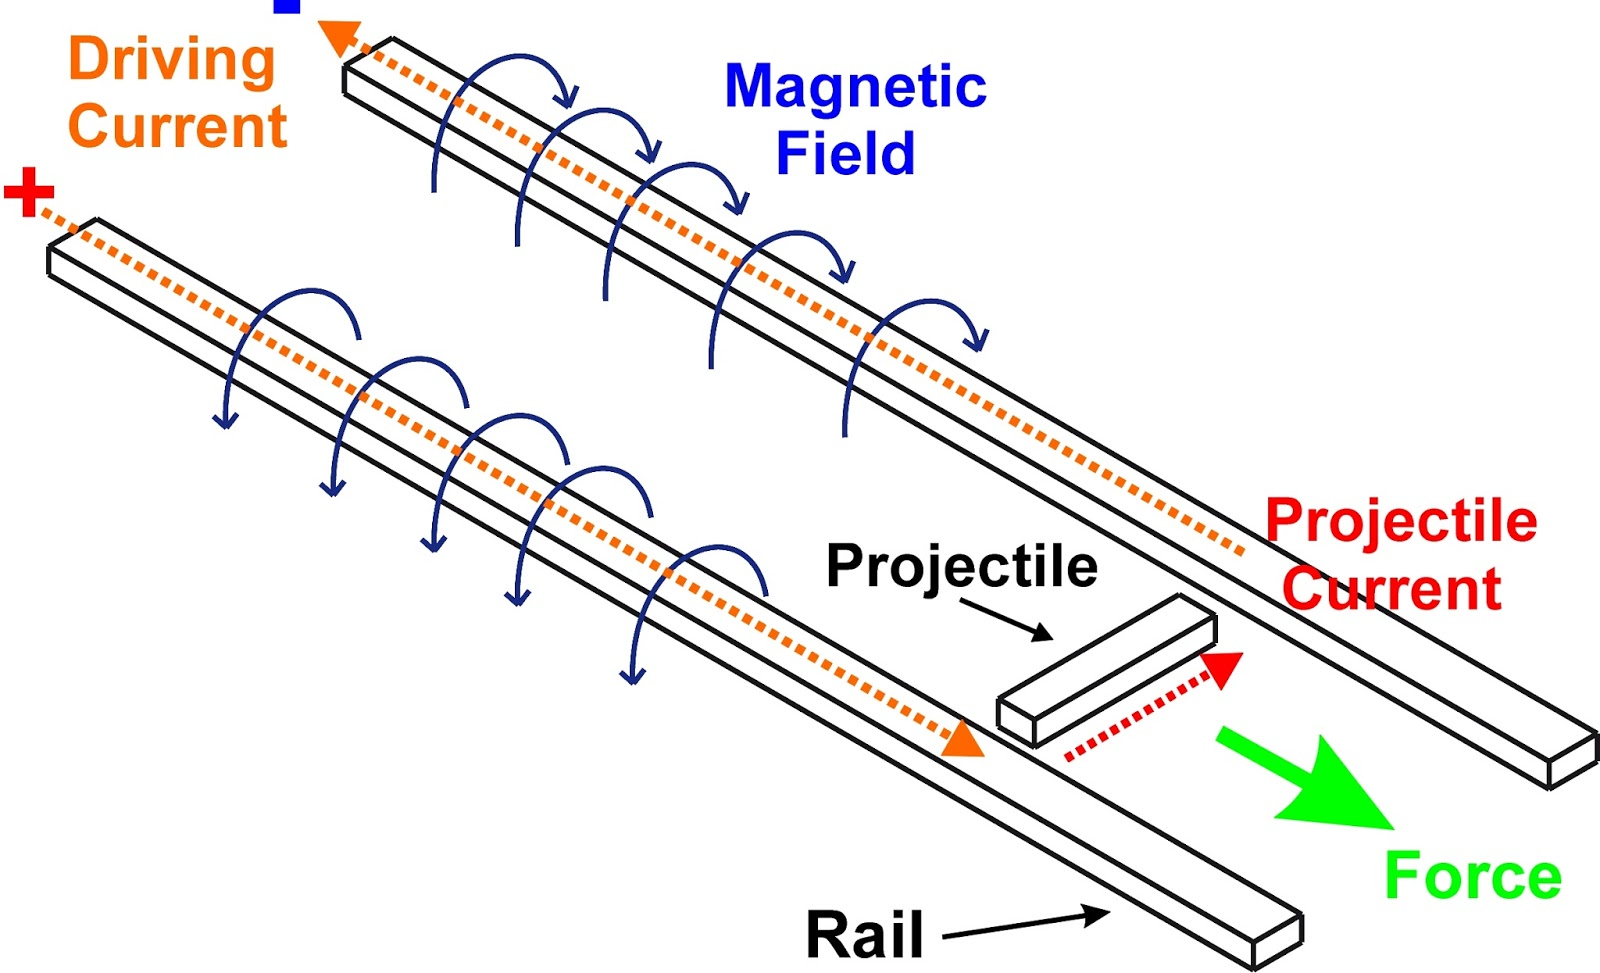 Basic Gun Diagram Blank Humerus Do It Yourself Gadgets Homemade Railgun Experiment A Consists Of Three Parts Set Parallel Metal Rails Huge Powersource Like Capacitorbank And Projectile